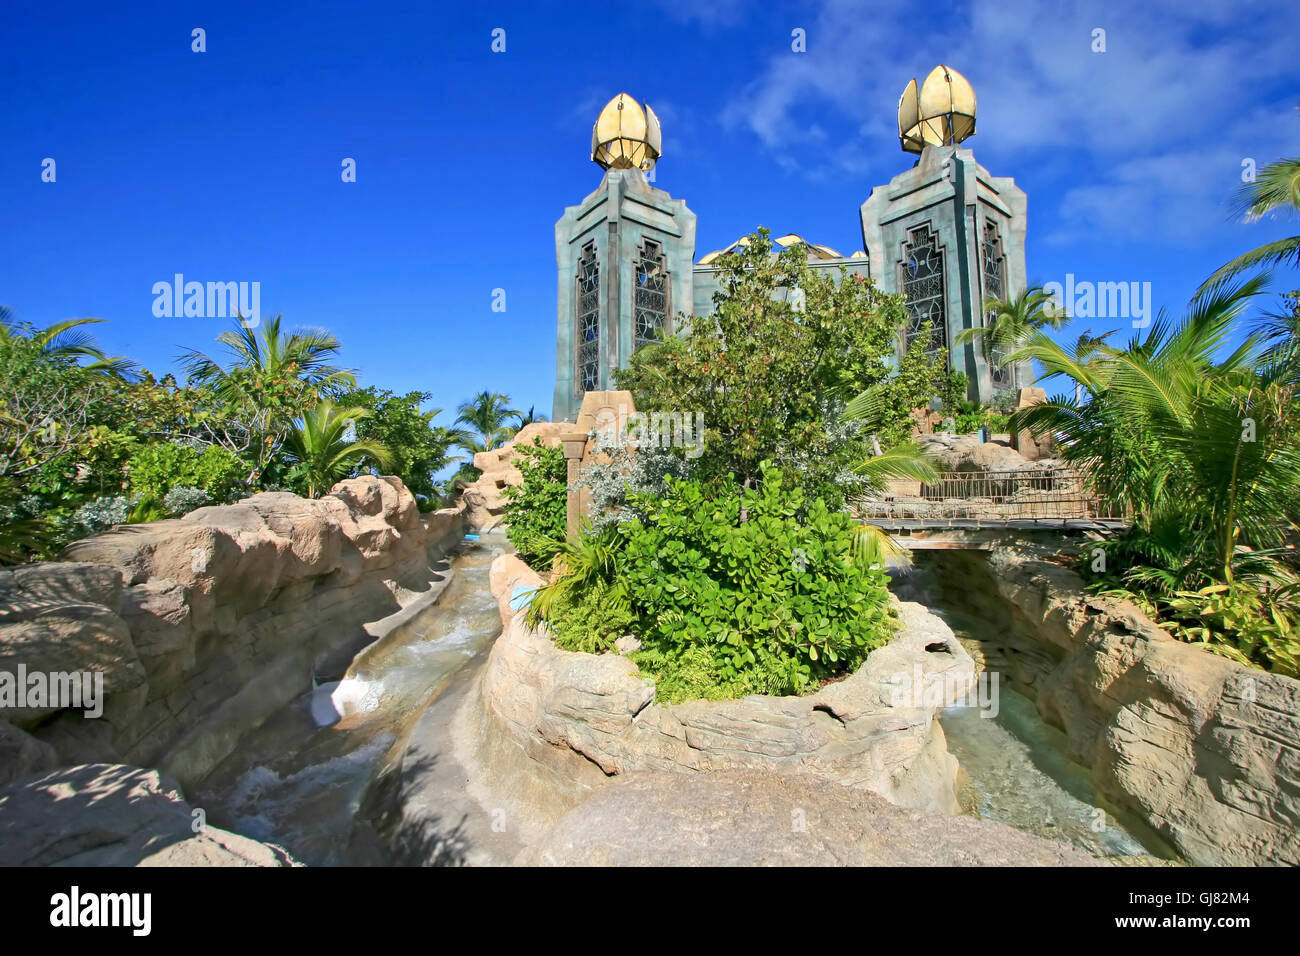 Aquaventure Water Park High Resolution Stock Photography And Images Alamy